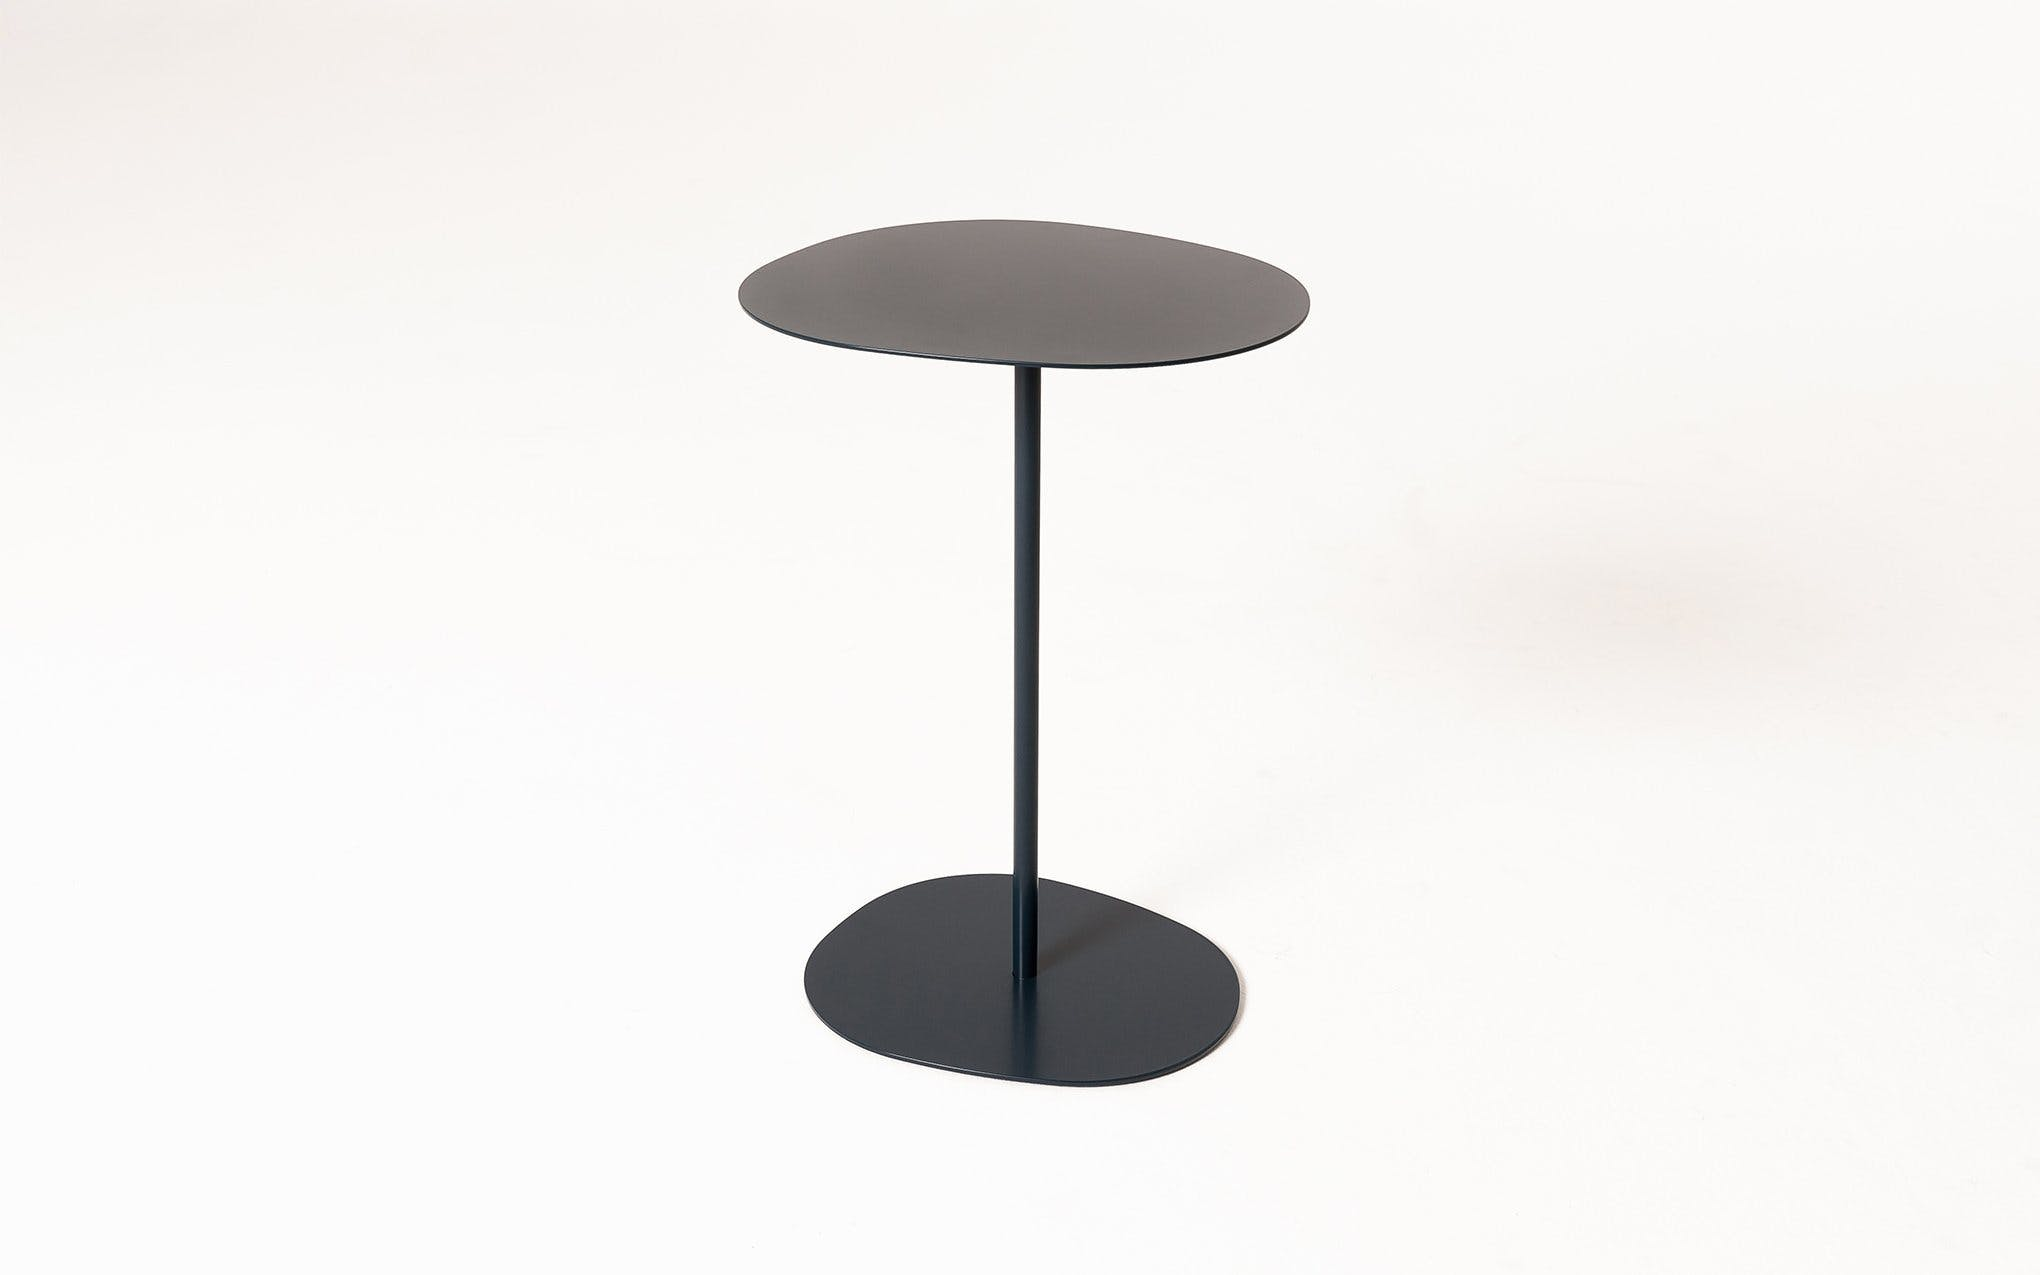 Scp-furniture-lily-side-table-black-haute-living